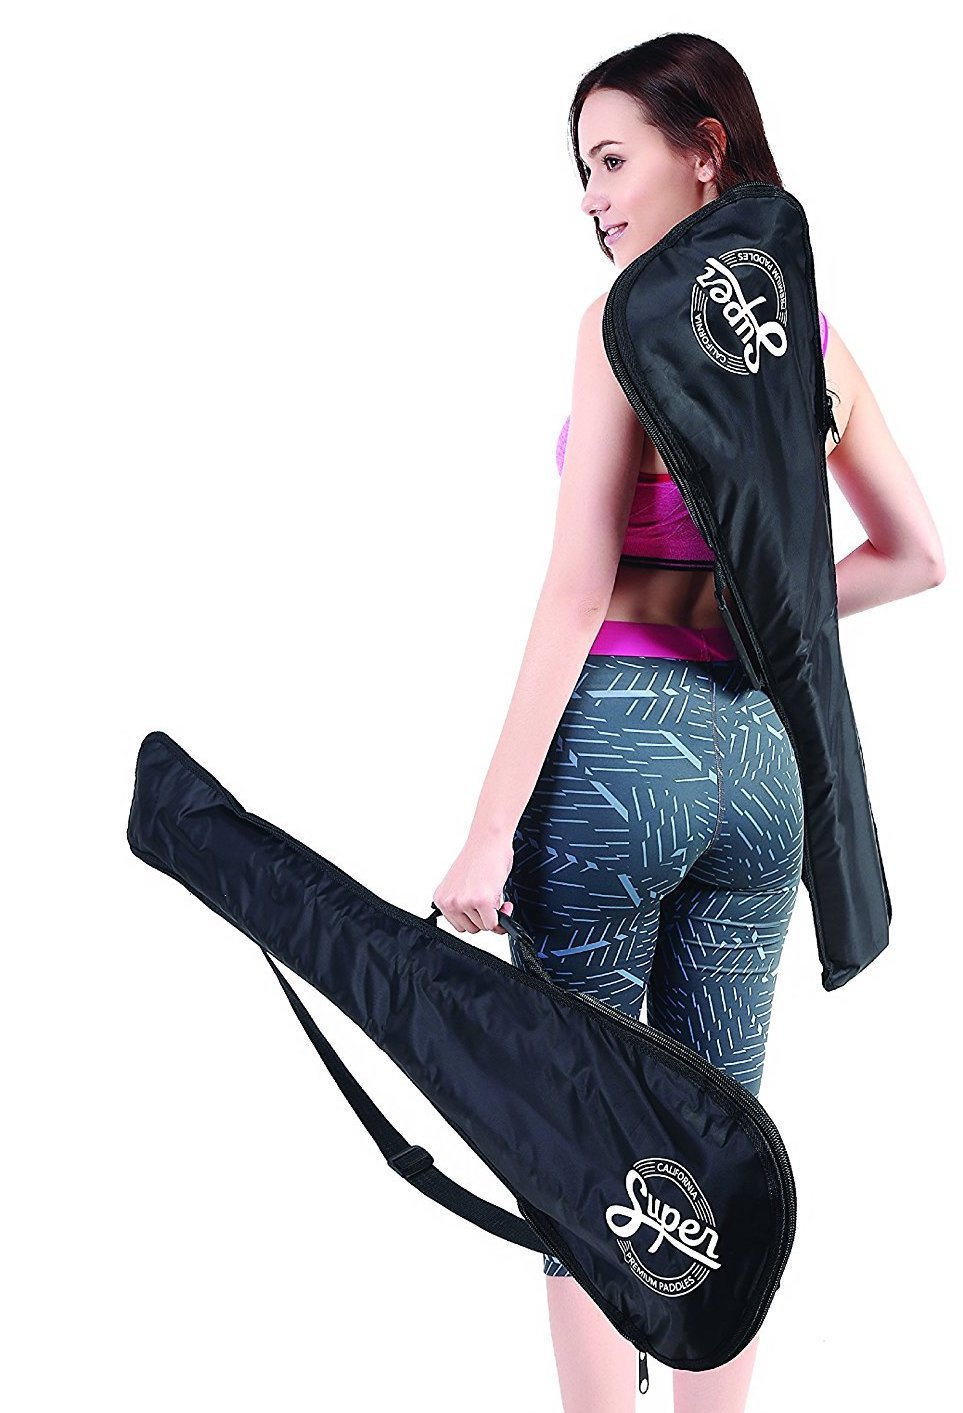 Premium SUP Paddle Bag for 3 Piece Adjustable Stand Up Paddles - Portable & Packable, Perfect for Travel